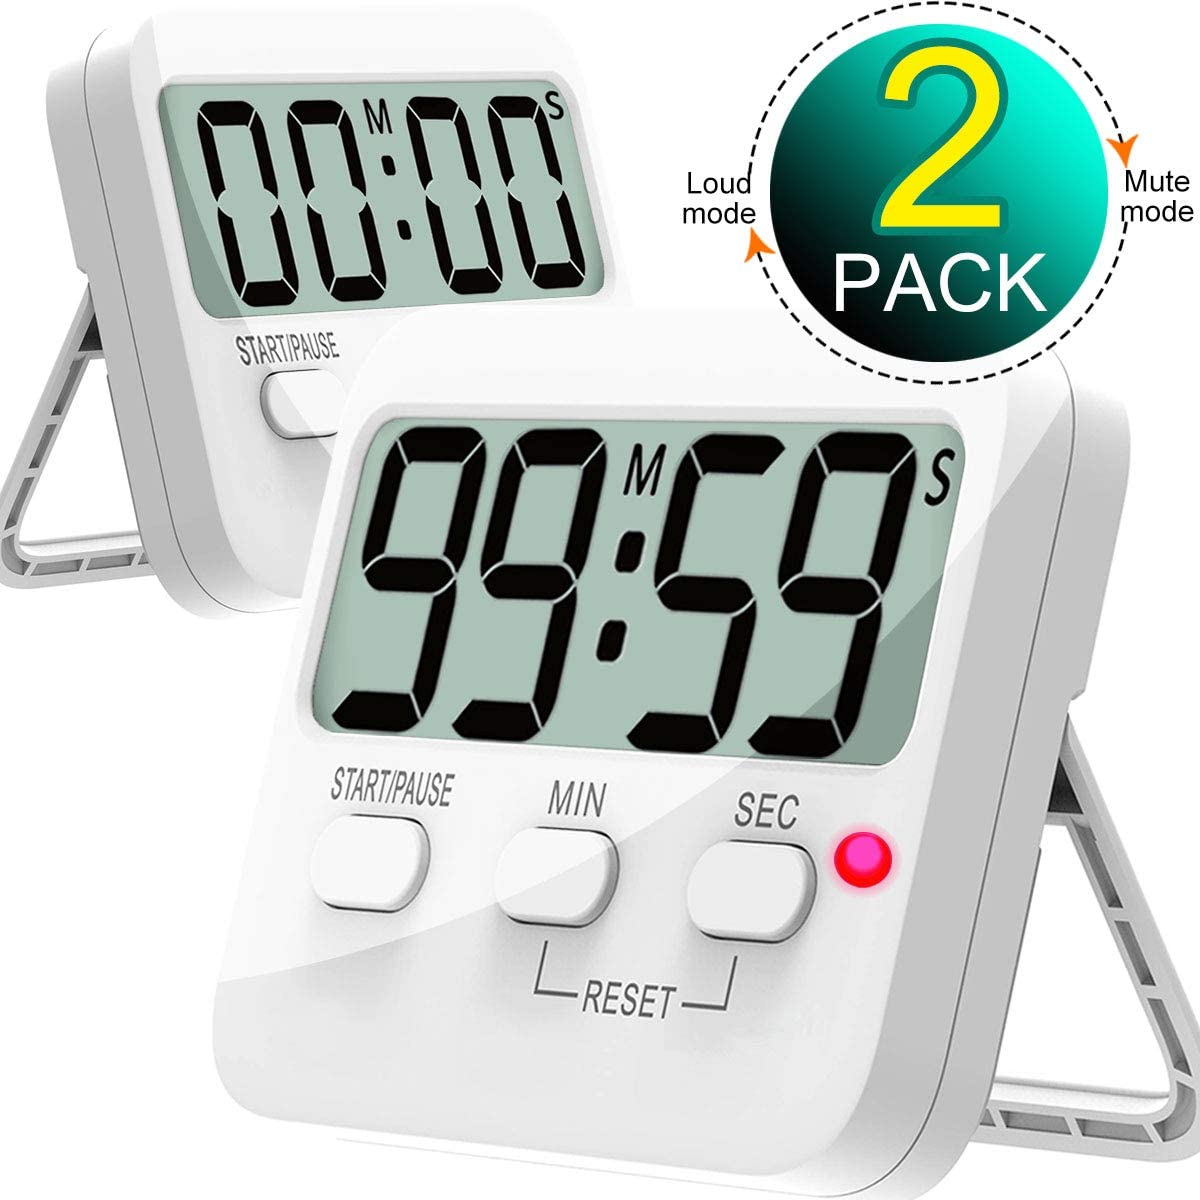 Kitchen Timer, Cbiumpro 2 Pack Digital Countdown Timers with Loud Alarm, Mute Mode, Auto-off, Magnetic Back, Big Digits for Kitchen, Classroom, Office, Bathroom, Teacher, Kids - Battery Included